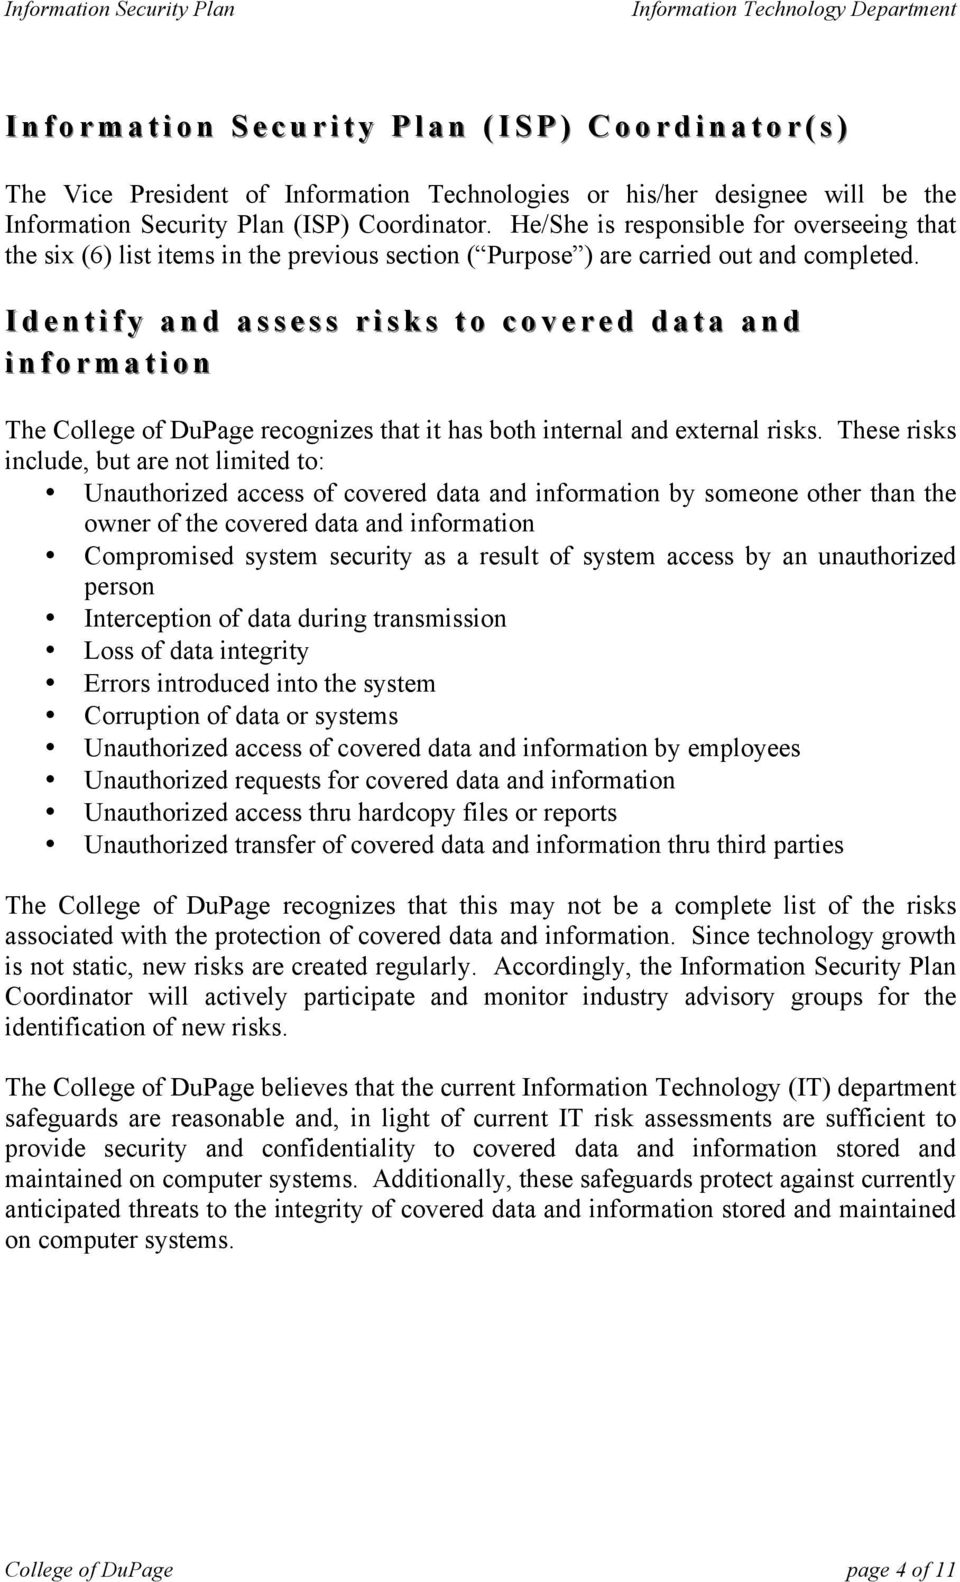 Identify and assess risks to covered data and information The College of DuPage recognizes that it has both internal and external risks.